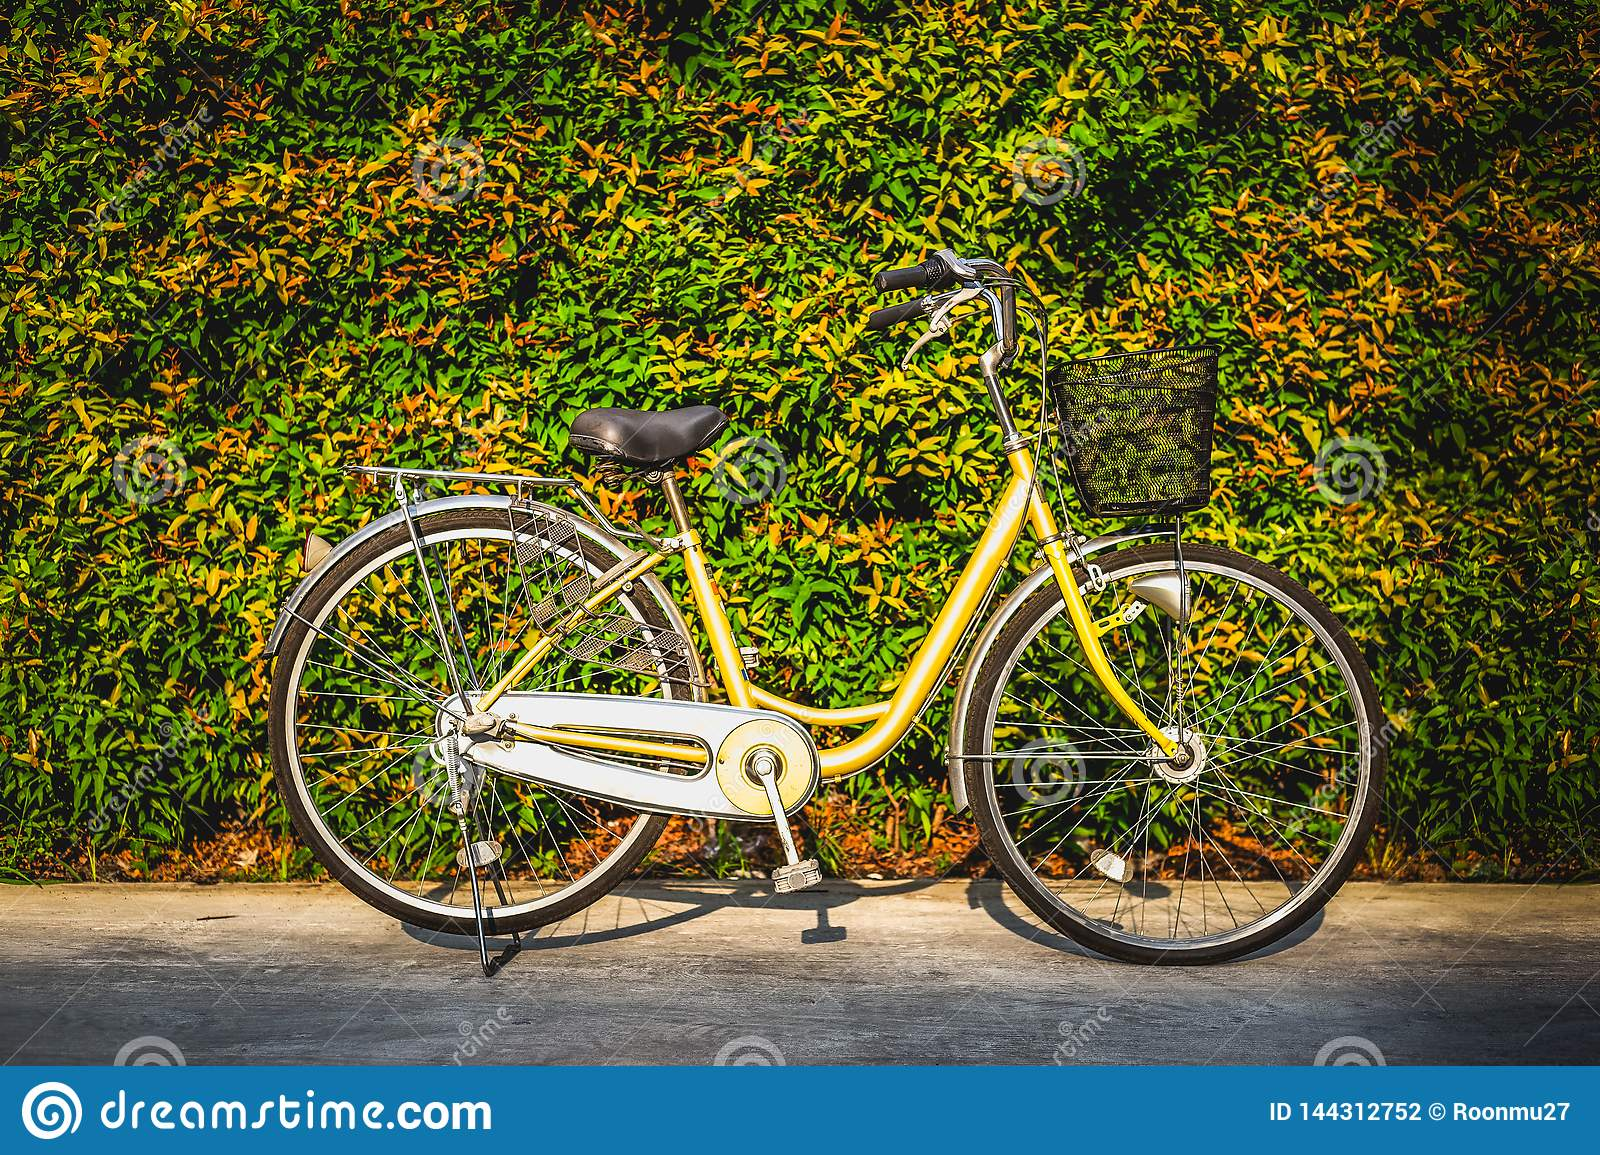 The vintage bicycle on colorful leaves wall background